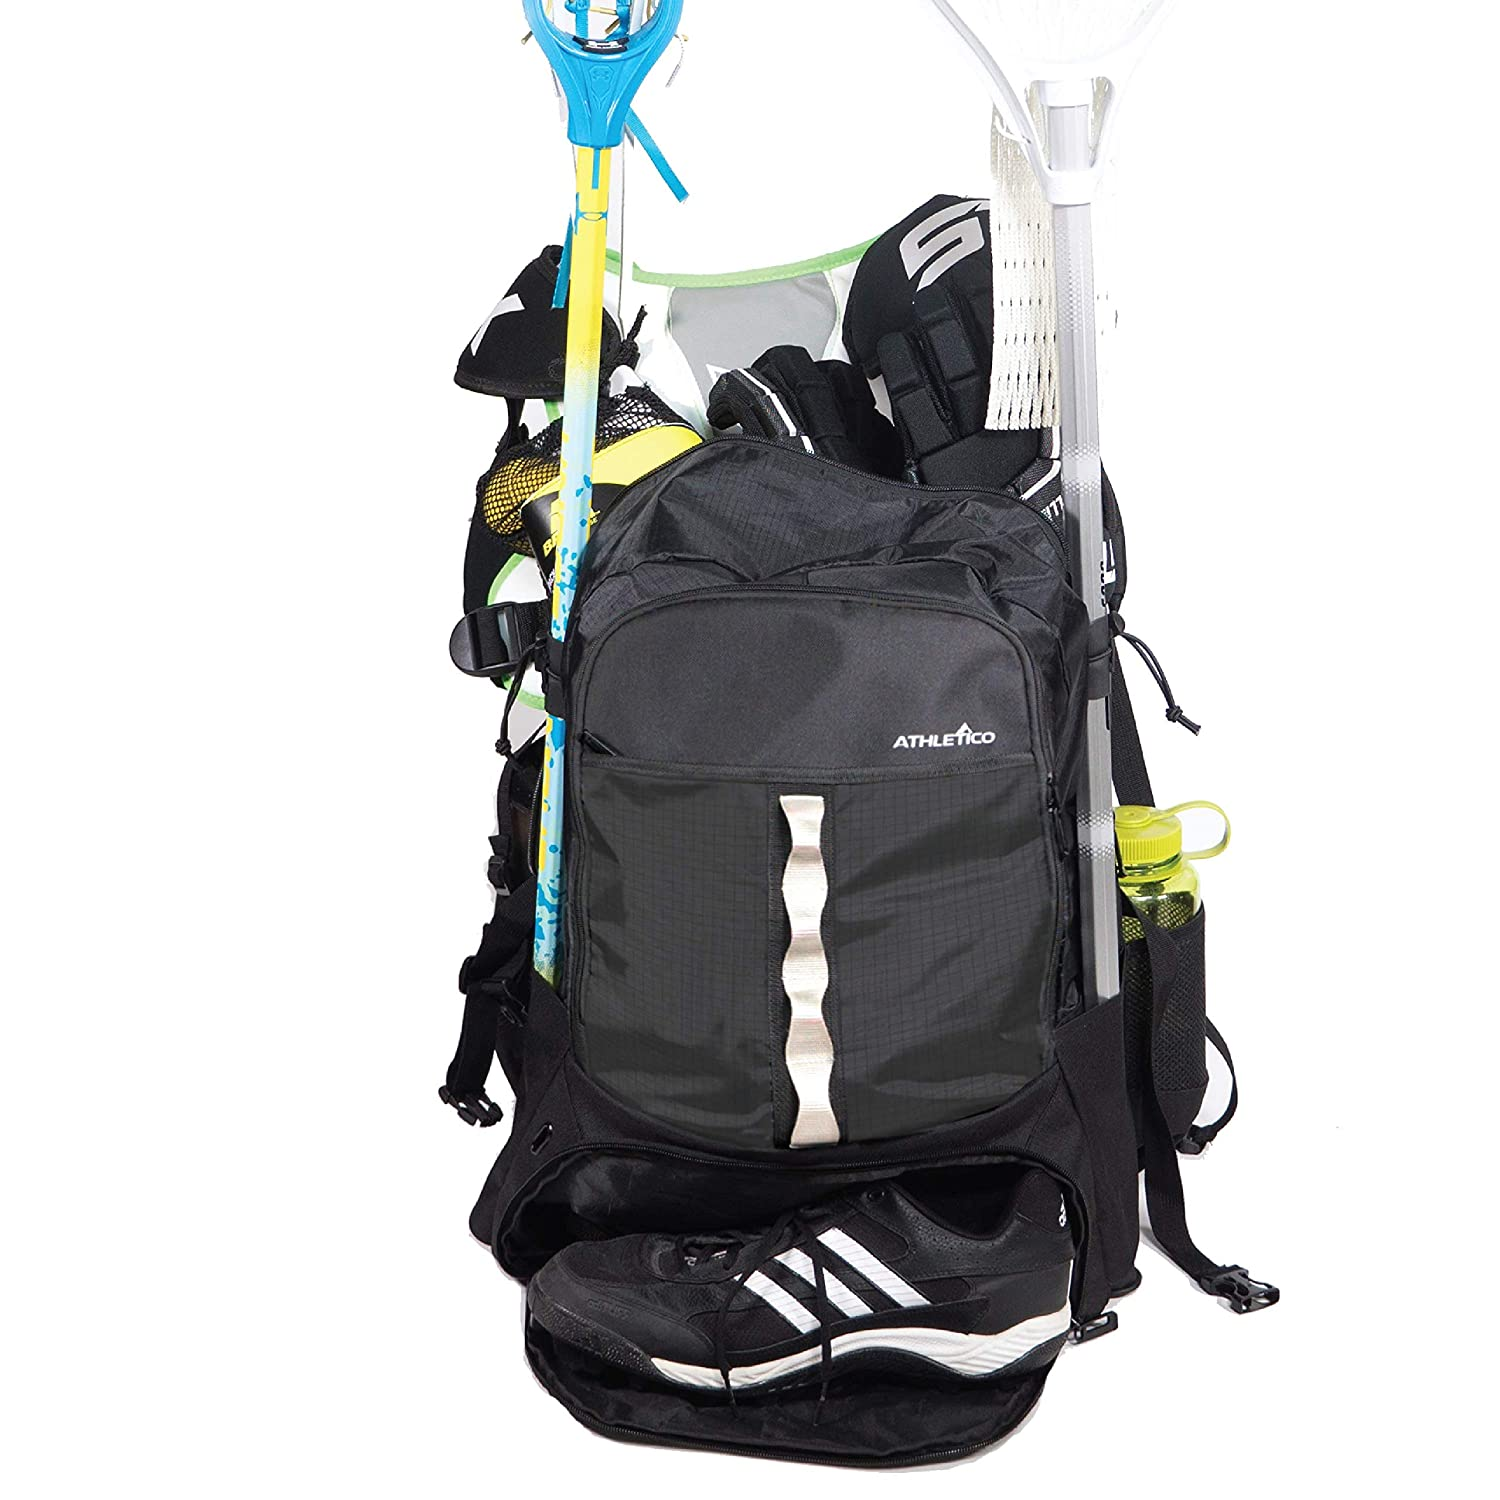 Athletico Lacrosse Bag - Extra Large Lacrosse Backpack - Holds All Lacrosse or Field Hockey Equipment - Two Stick Holders and Separate Cleats Compartment